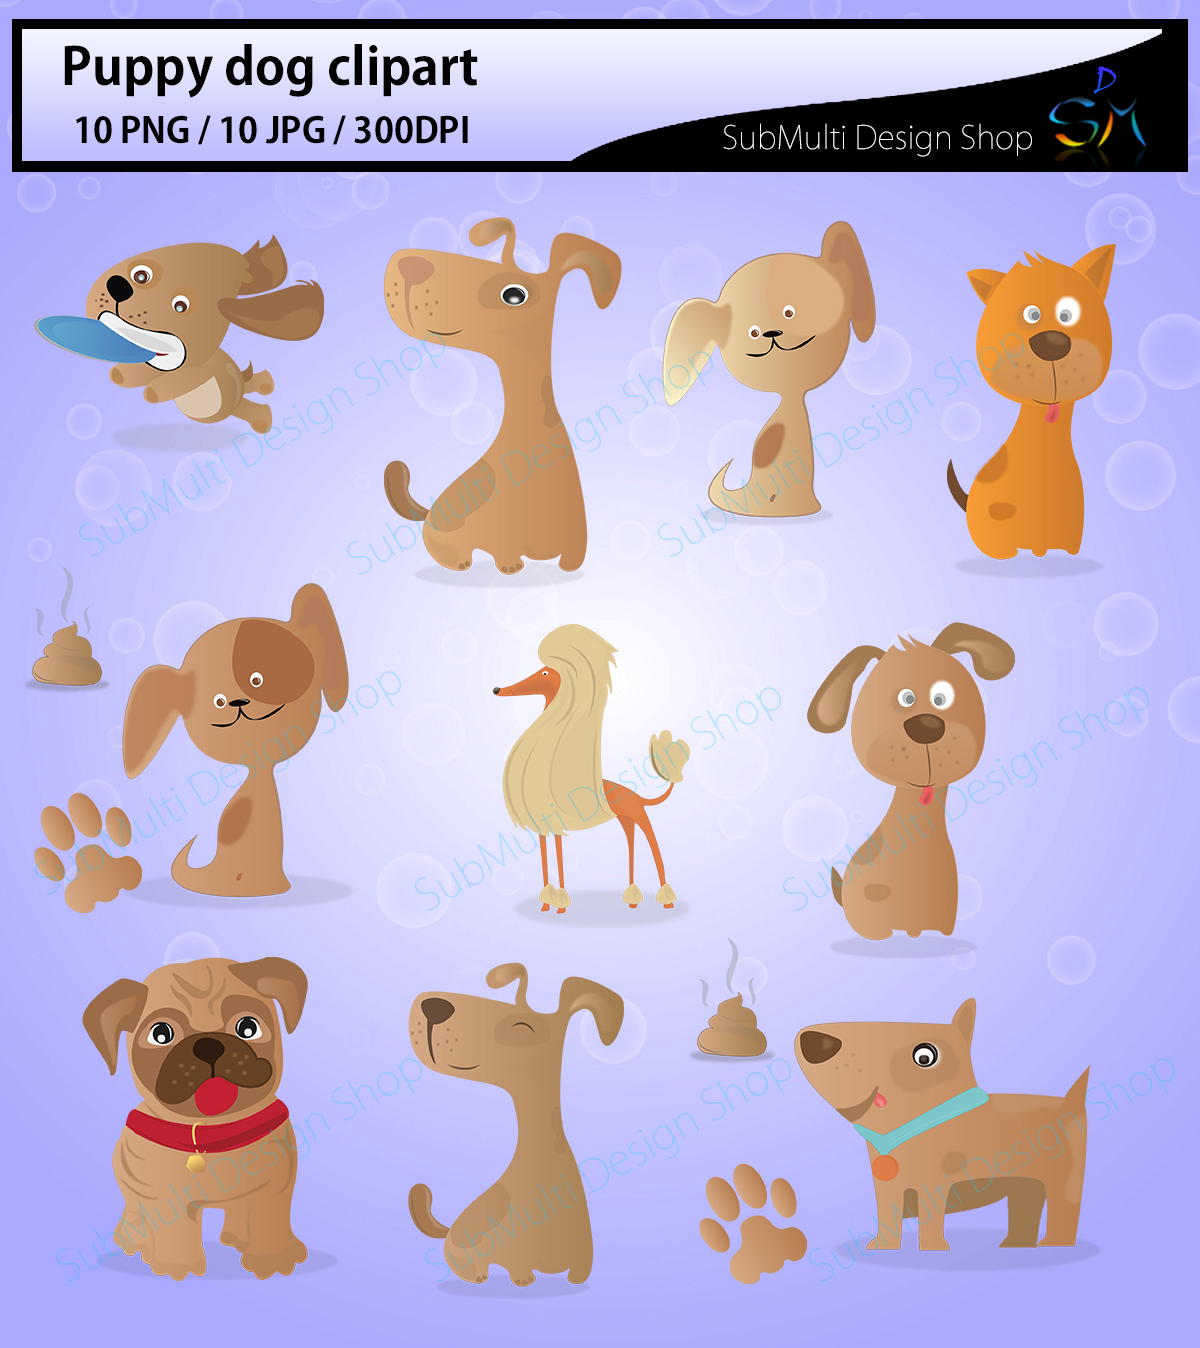 puppy dog clipart / Digital Clip Art for Scrapbooking Card Making Cupcake Toppers Paper Crafts / doodle dogs / puppy doodles / cute dogs example image 2